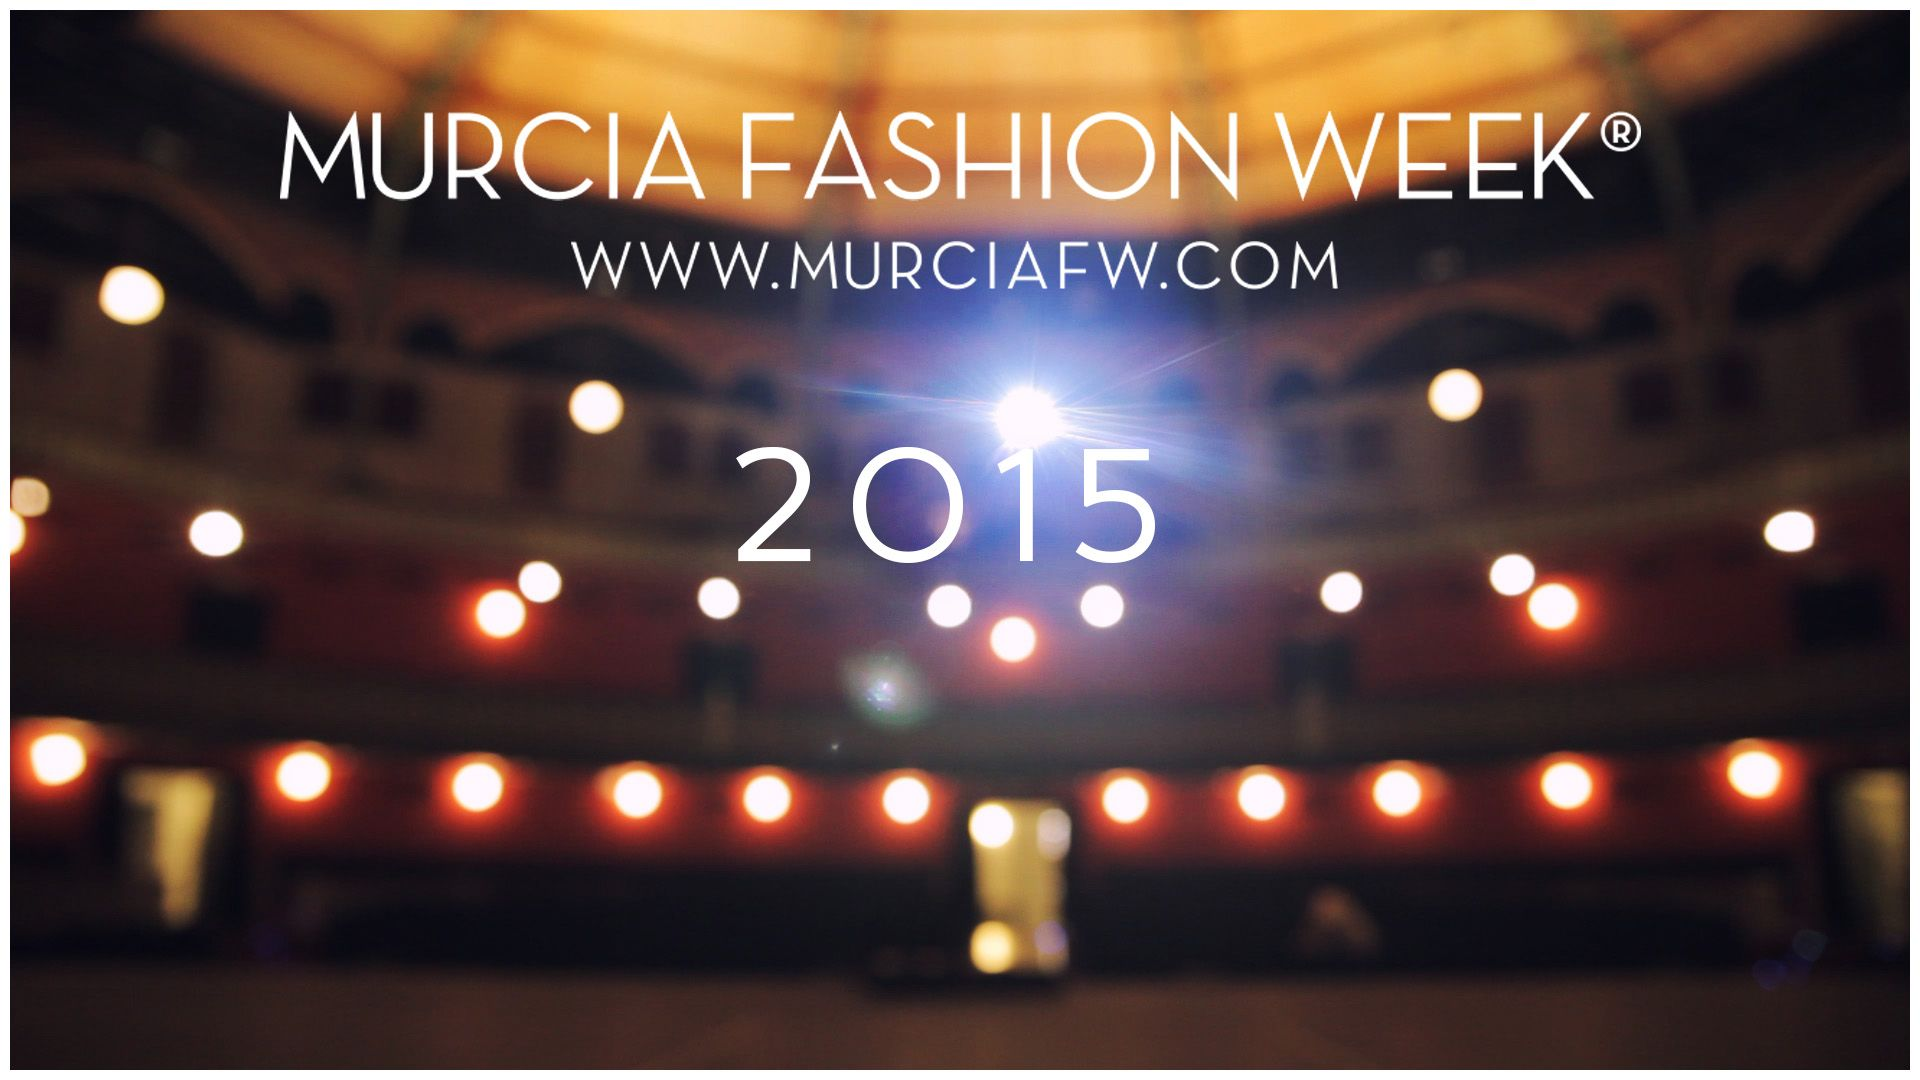 Murcia Fashion Week 2015 Teatro Circo